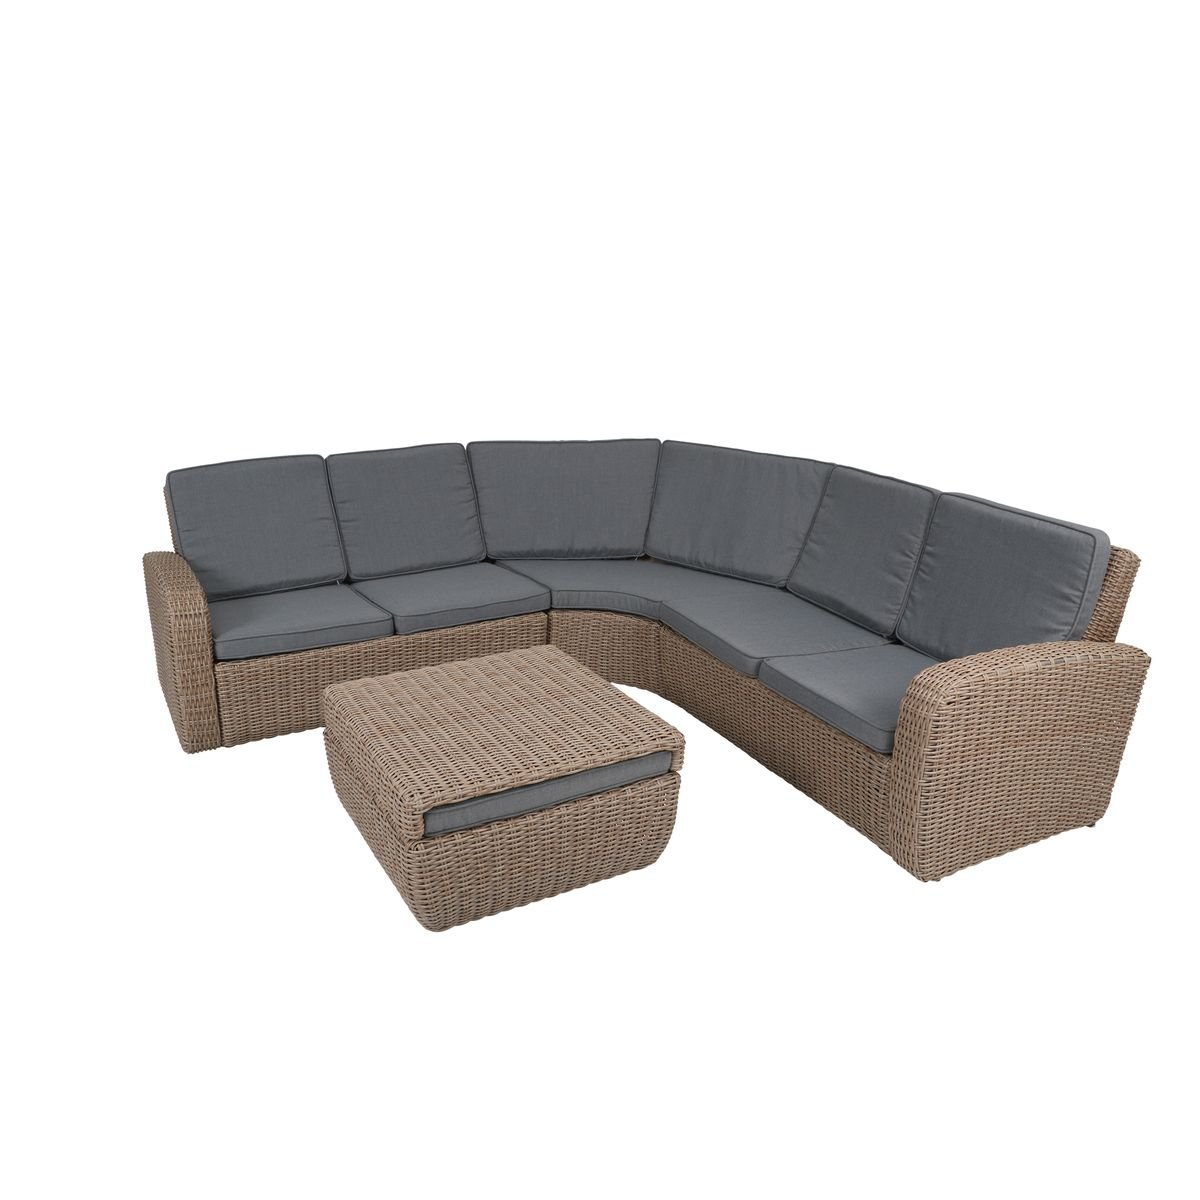 Greemotion rattan lounge new york gartenm bel set 4 for Greemotion gartenmobel